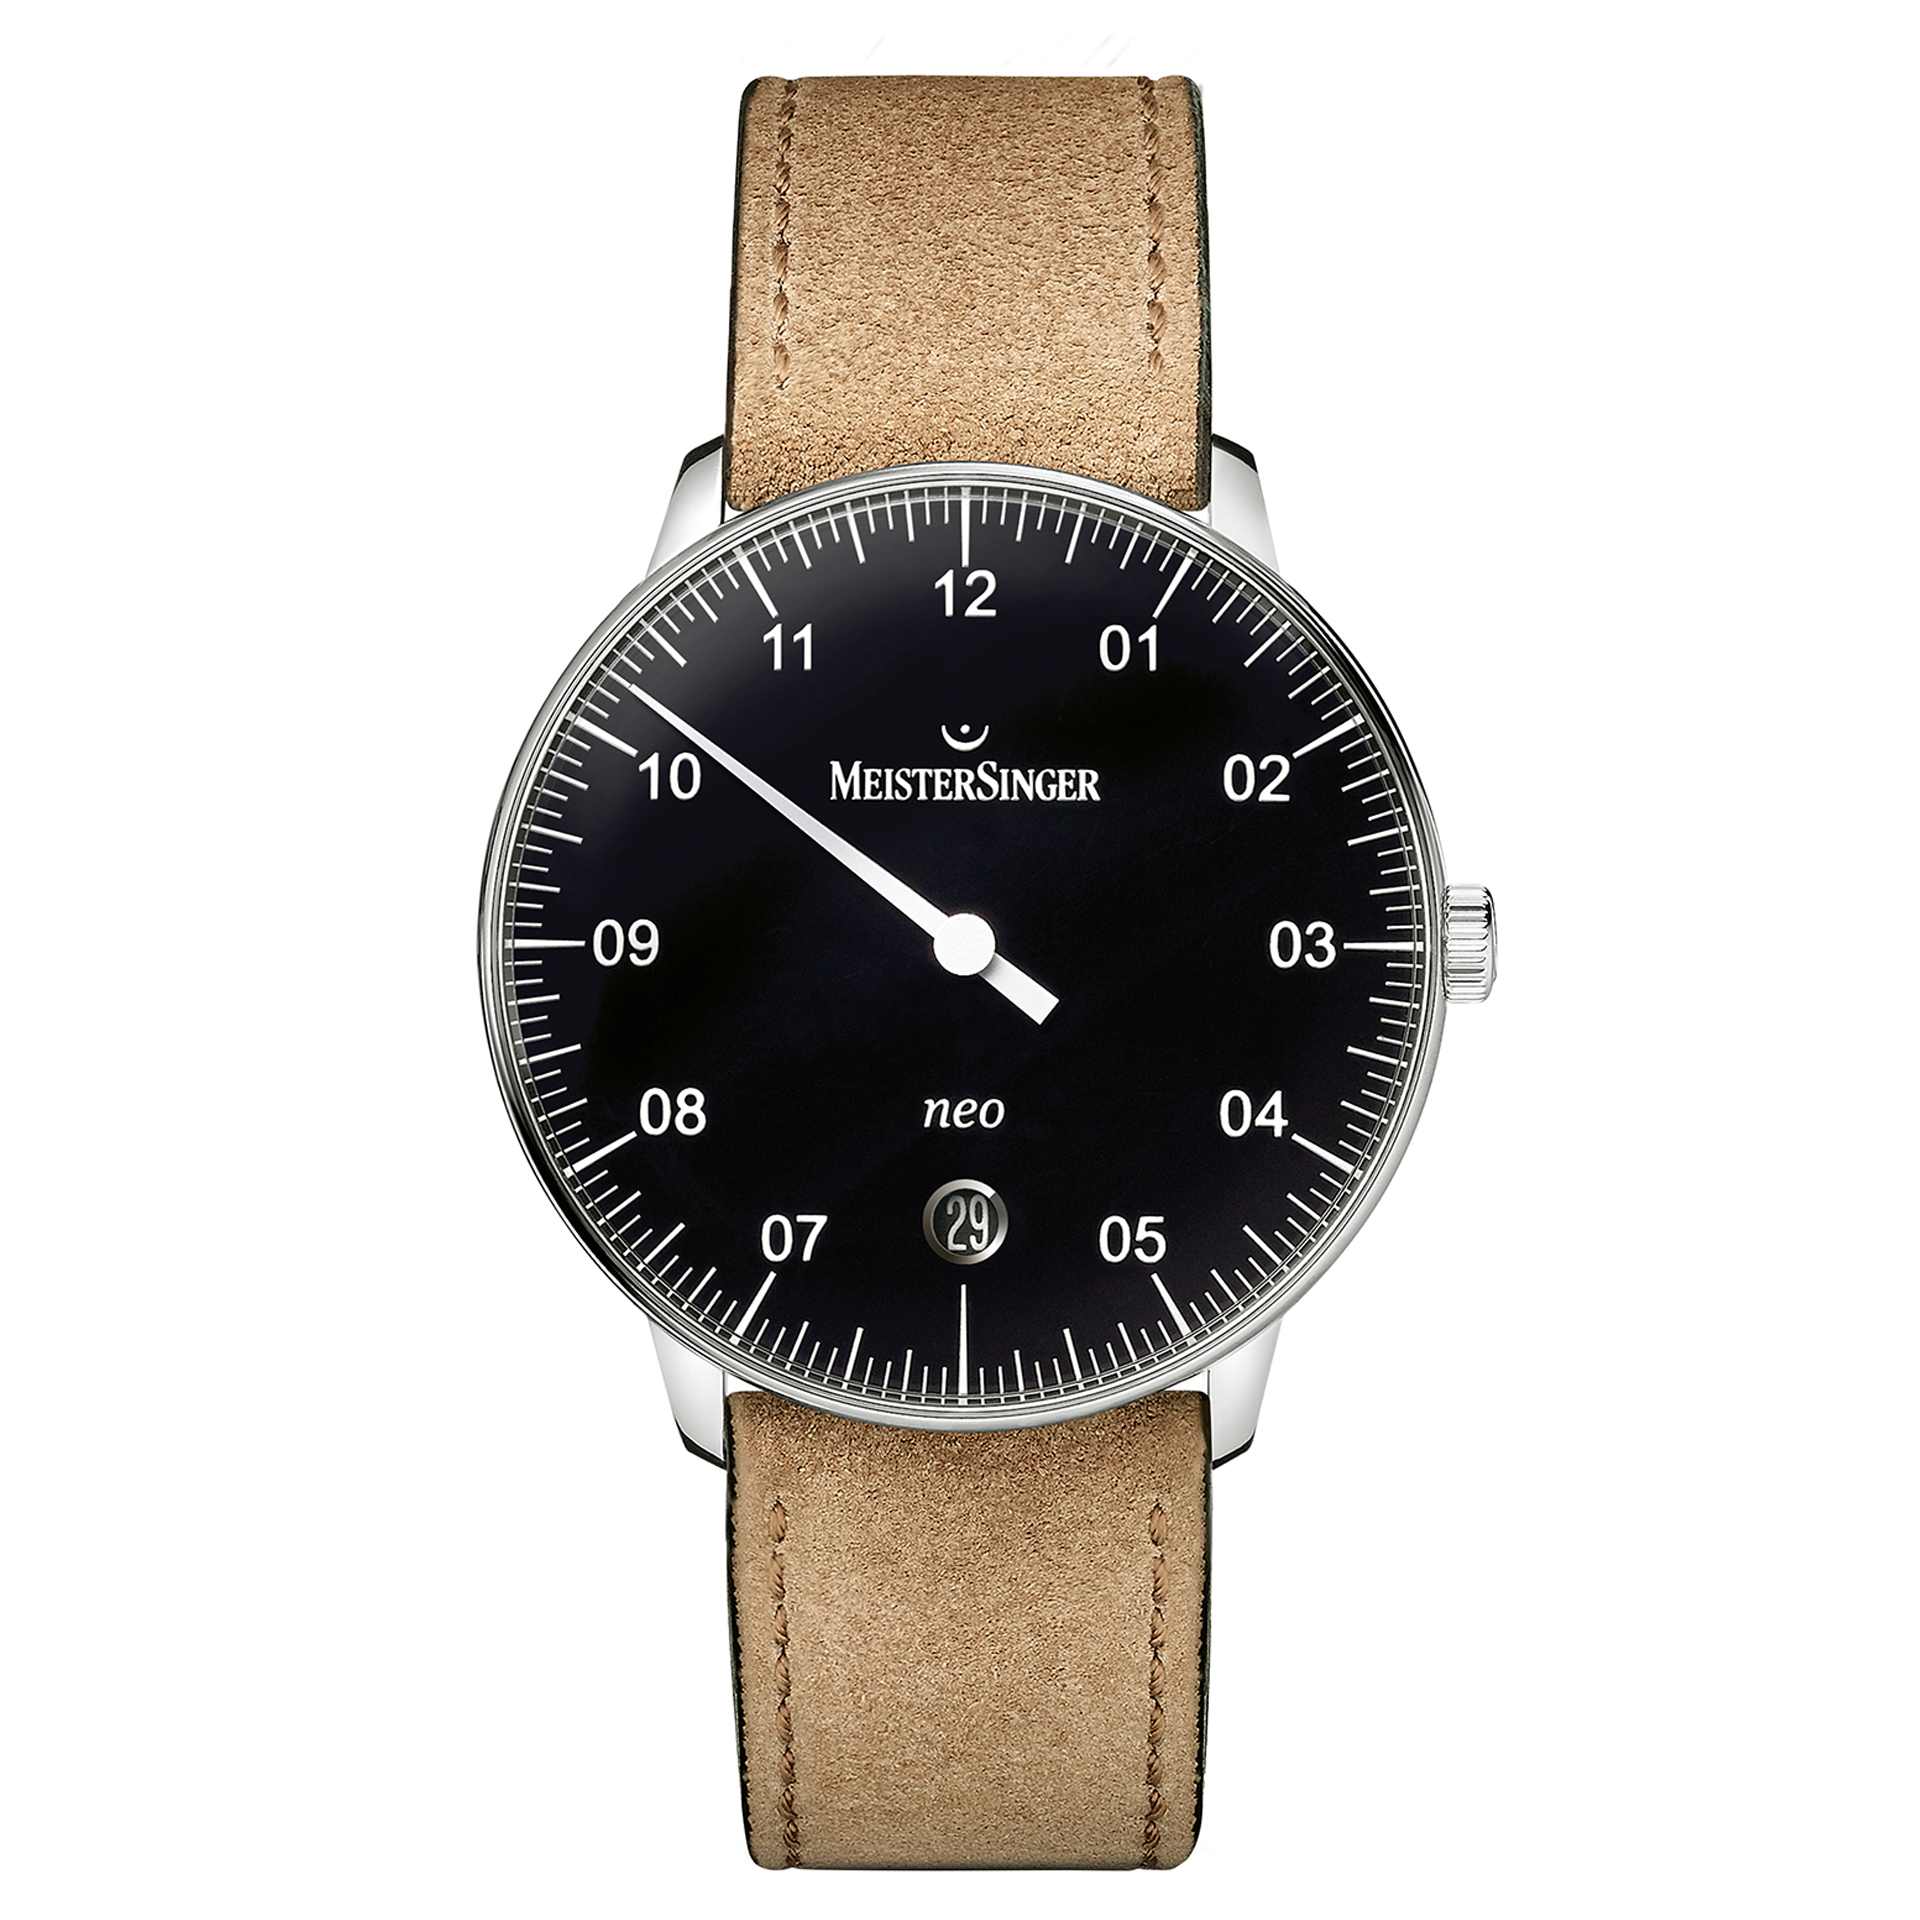 Meistersinger Neo And Meistersinger Neo Q Your Watch Hub